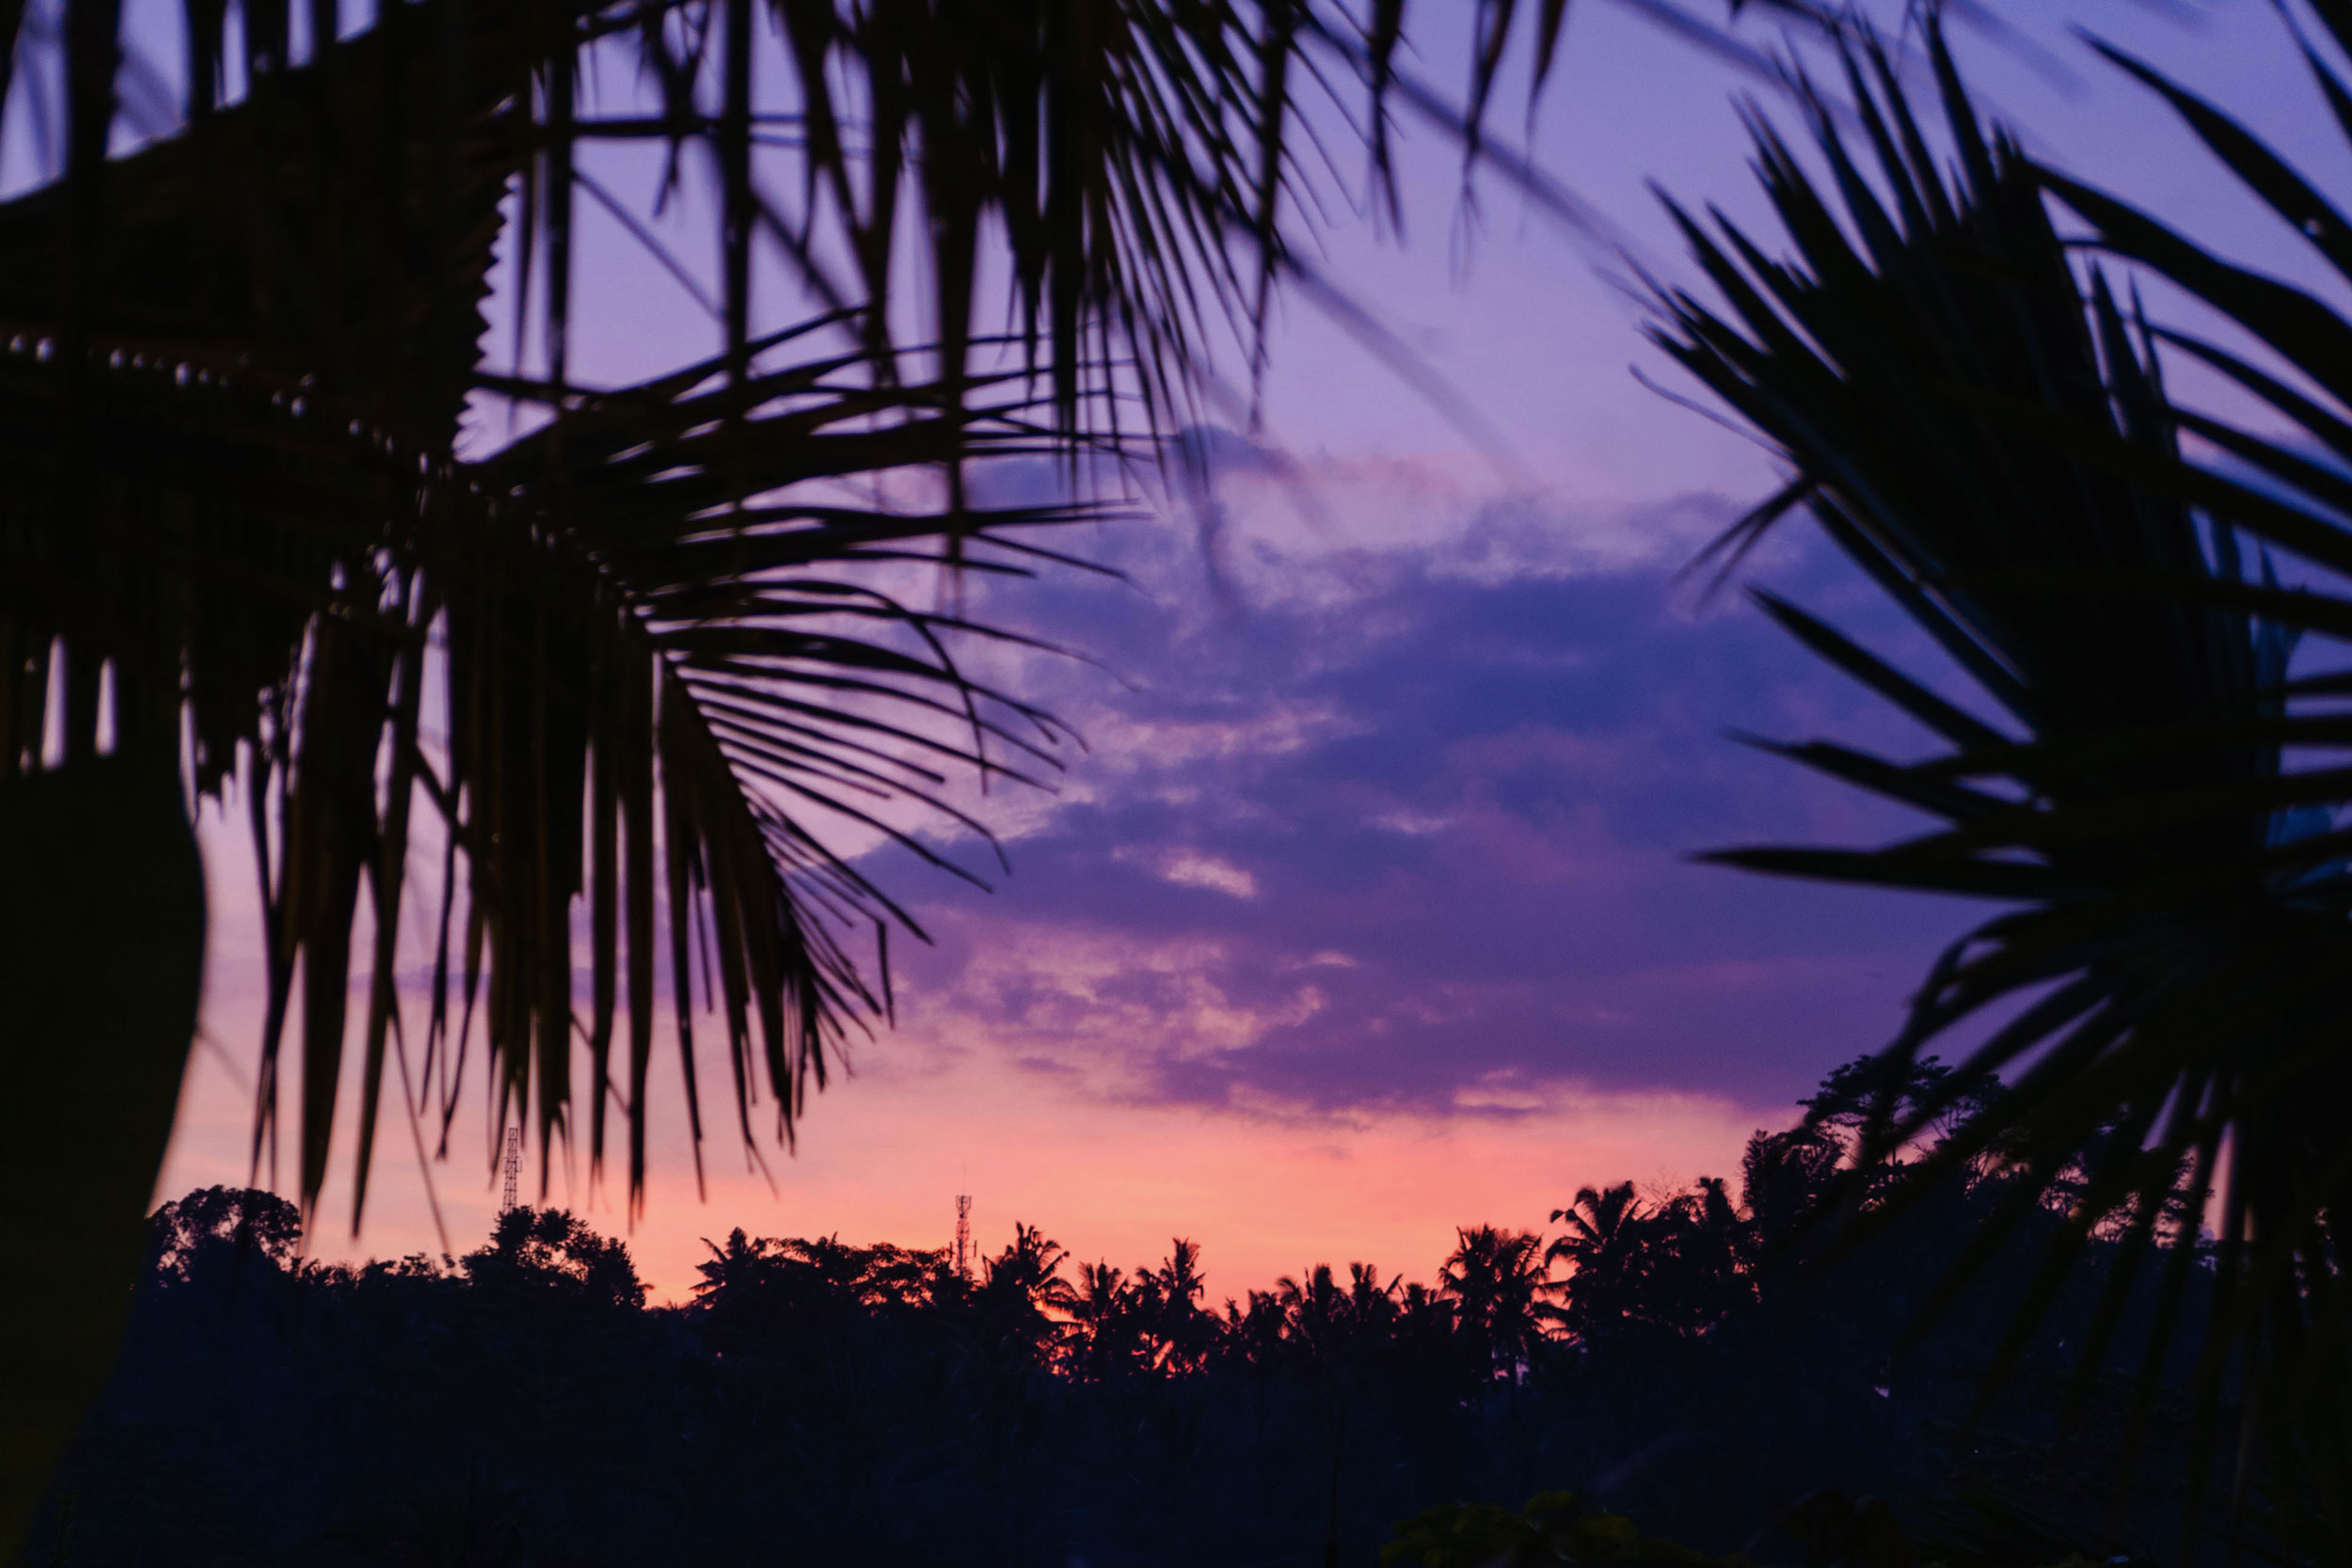 Sunset from the private pool deck at Nau Villas in Ubud, Bali